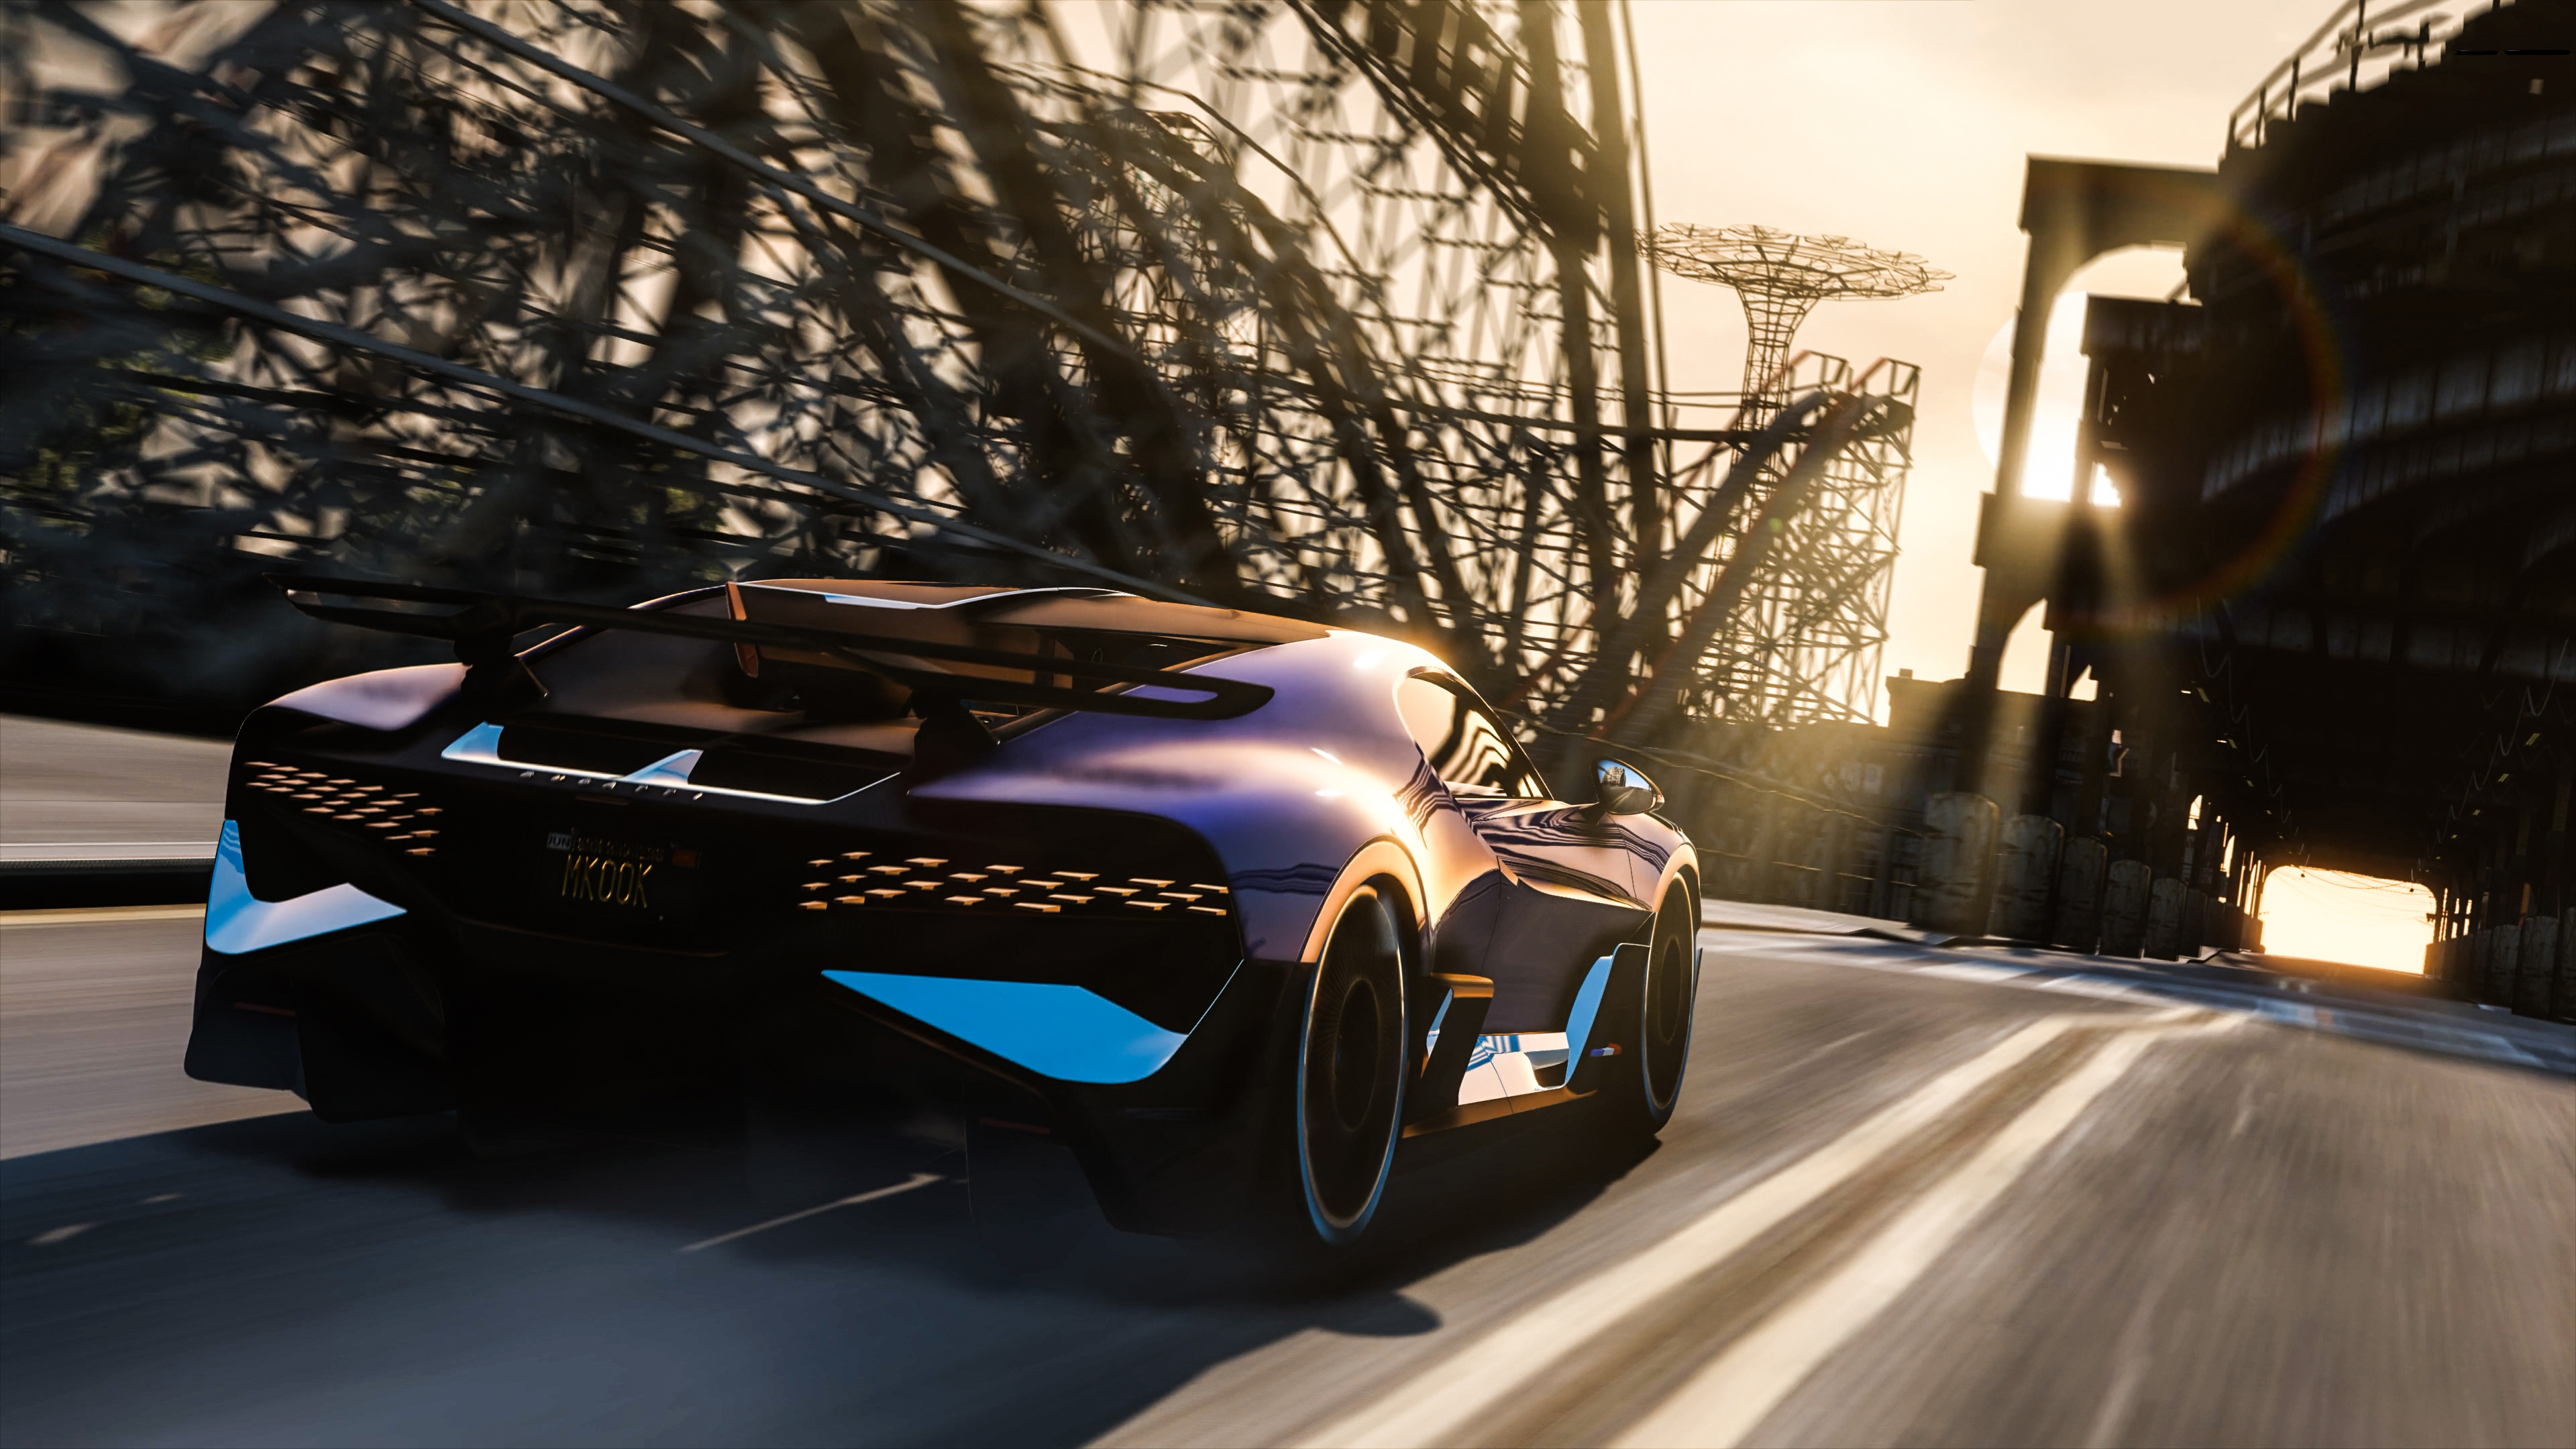 gta v bugatti divo 4k 1541295335 - Gta V Bugatti Divo 4k - hd-wallpapers, gta 5 wallpapers, cars wallpapers, bugatti wallpapers, bugatti divo wallpapers, 4k-wallpapers, 2018 cars wallpapers